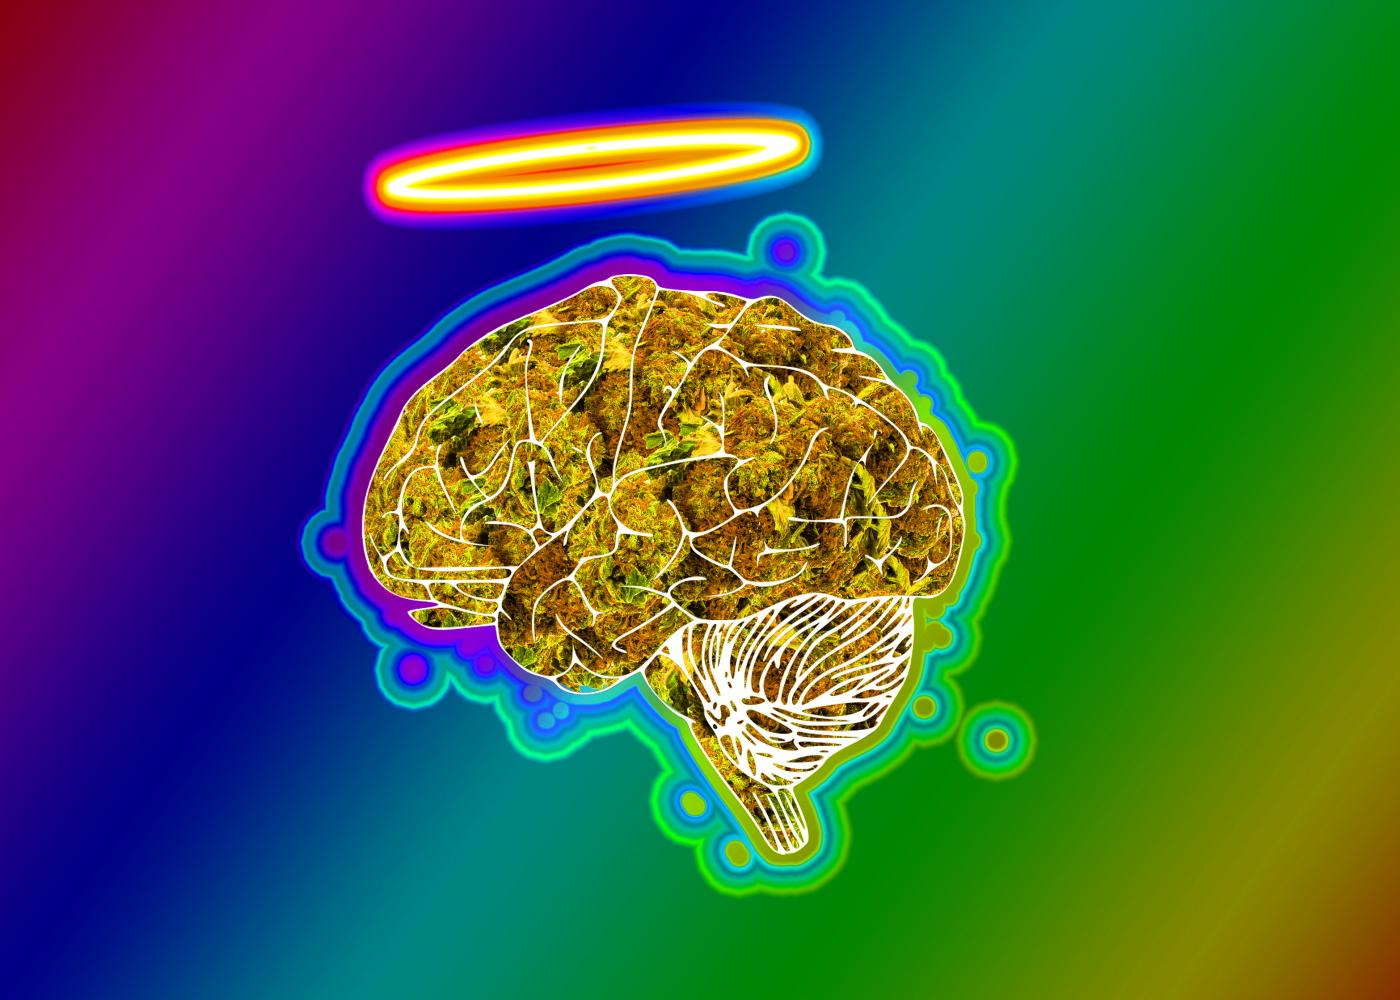 "Recent studies done by researchers at Bonn University in Germany suggest that small amounts of tetrahydrocannabinol (THC) can restore memory and learning functions in the brains of older subjects, similar to the levels of younger subjects. Previous studies have shown that THC exposure in younger and adolescent subjects reduces learning and memory ability. The results of this study reflect the opposite in older subjects. The study was completed using mice ranging in ages from 2 to 18 months. The older mice treated with small doses of THC showed similar cognitive function to the younger mice during testing. The researchers are planning a clinical trial on humans showing signs of cognitive decline. The results from the study done on mice are promising for those with Alzheimer's. THC decreases the production of amyloid beta, a protein that spikes in early stages of the disease, according to a study done at the University of South Florida. Billy Lauderdale, an employee at Cannabis Central in Ellensburg, has noticed an increase in the number of elderly customers. These customers are purchasing more cannabidiol (CBD) products than marijuana products including THC, according to Lauderdale. Lauderdale believes more marijuana research will ""help people understand there is more than one side"" to pot and it is not just used to get high. The older customers are utilizing the other parts of the plant. With more research on medical benefits Dan DeVries, manager at The Fire House in Ellensburg, said ""the stigma will go away,"" referring to the stereotypes surrounding pot users. ""We've been lied to for so long,"" DeVries said. The criminalization and stigmatization of pot goes back to before the Nixon administration, and DeVries believes the older generation is very prideful and stuck in their ways.  DeVries also believes the lack of research into medical marijuana has led to ""people not being able to get outside their circumstances,"" in addition to being somewhat narrow-minded. He also believes younger generations understand marijuana better than older generations. DeVries recognizes the older generation's lack of acceptance stems from the way they were raised, which was to believe pot is a highly addictive gateway drug. DeVries also called upon the media to continue to cover medical marijuana research. He believes if the media ""continues to publish the hell out of positive news"" regarding pot, the older generations could possibly be swayed to change their minds on medical marijuana."